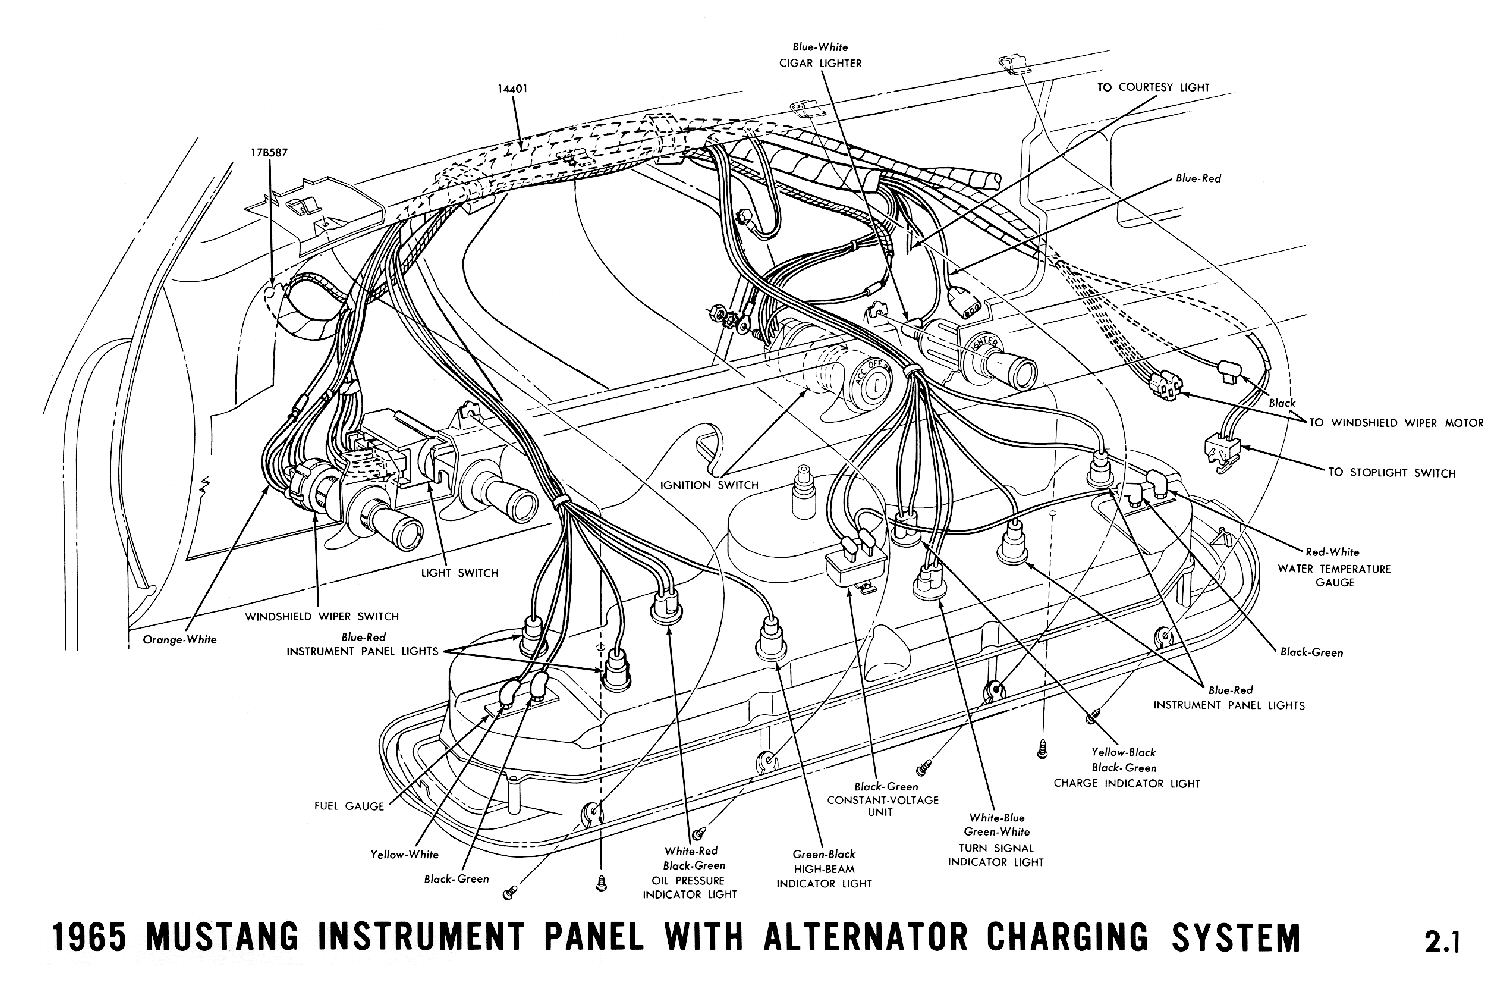 1964 C10 Chevy Truck Wiring Diagram as well 0a2i8 1986 F350 Wont Stay Started besides 09t0b 1990 Ford F150 Rod The Steering Column Ignition Module Cranking besides 1974 Corvette Starter Wiring Diagram as well Ignition Coil Diagram For A 1968 Buick 350 Wiring Diagrams. on 1967 chevelle wiper motor wiring diagram